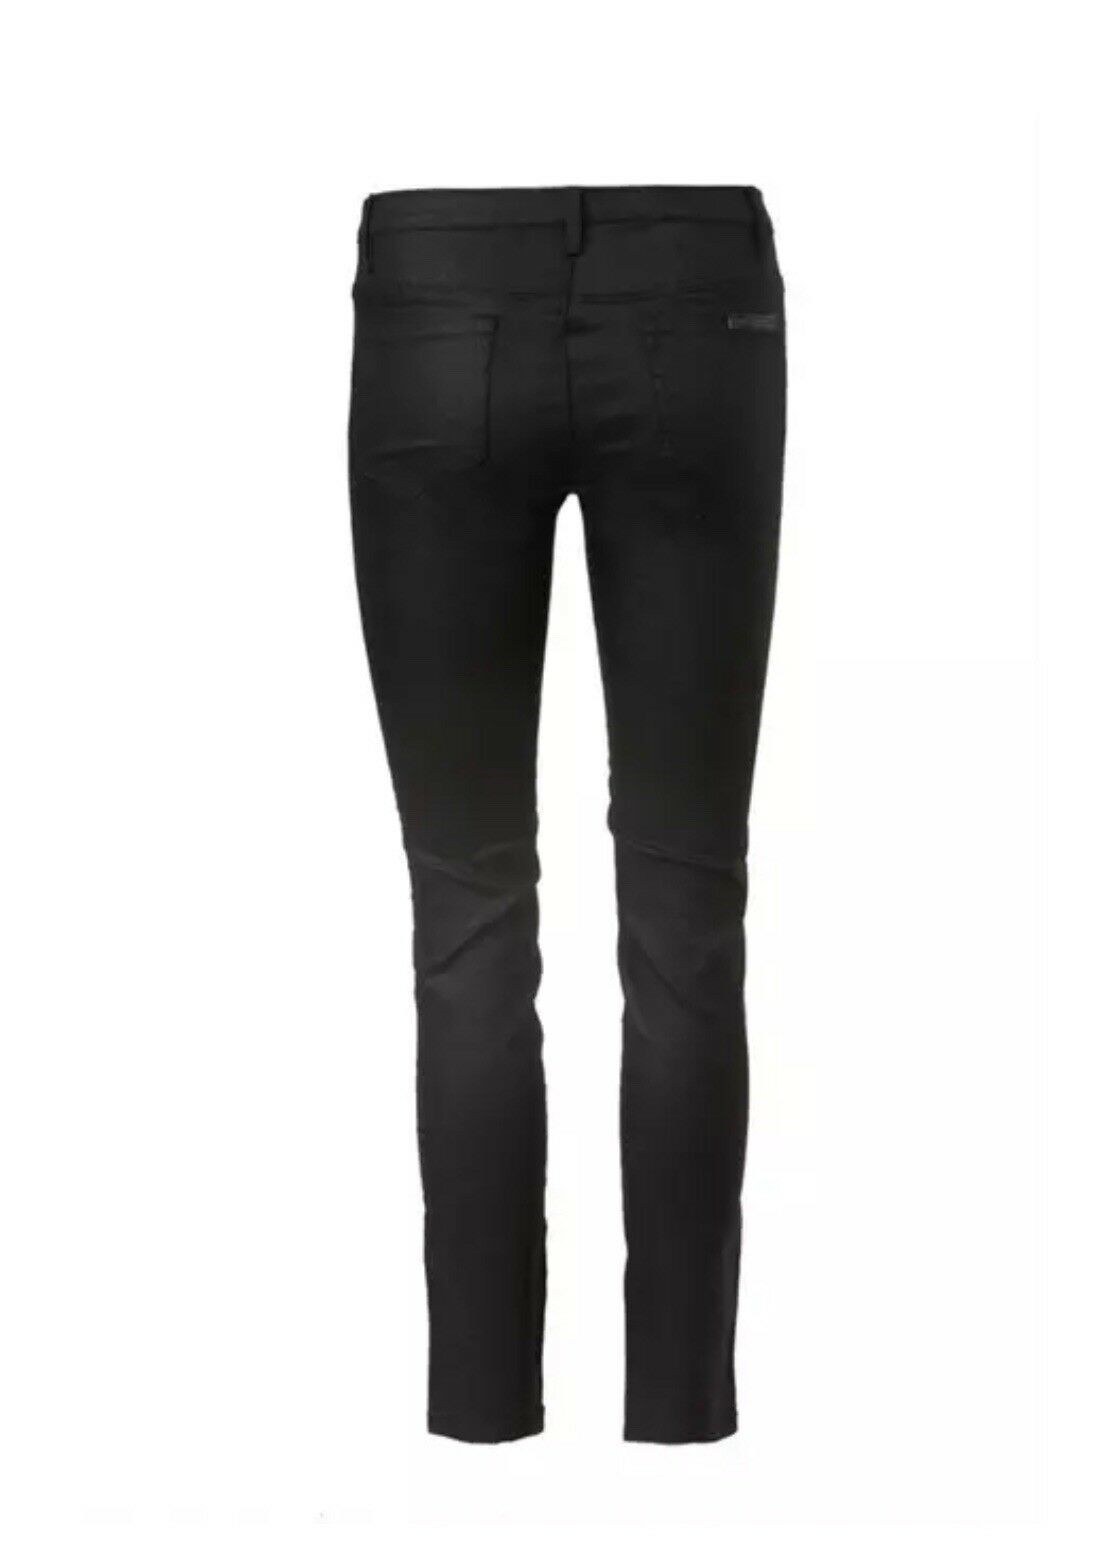 Sass & Bide HULSEY STRUTTERS High Rise Wax Coated Skinny Crop Jeans 24 NEW